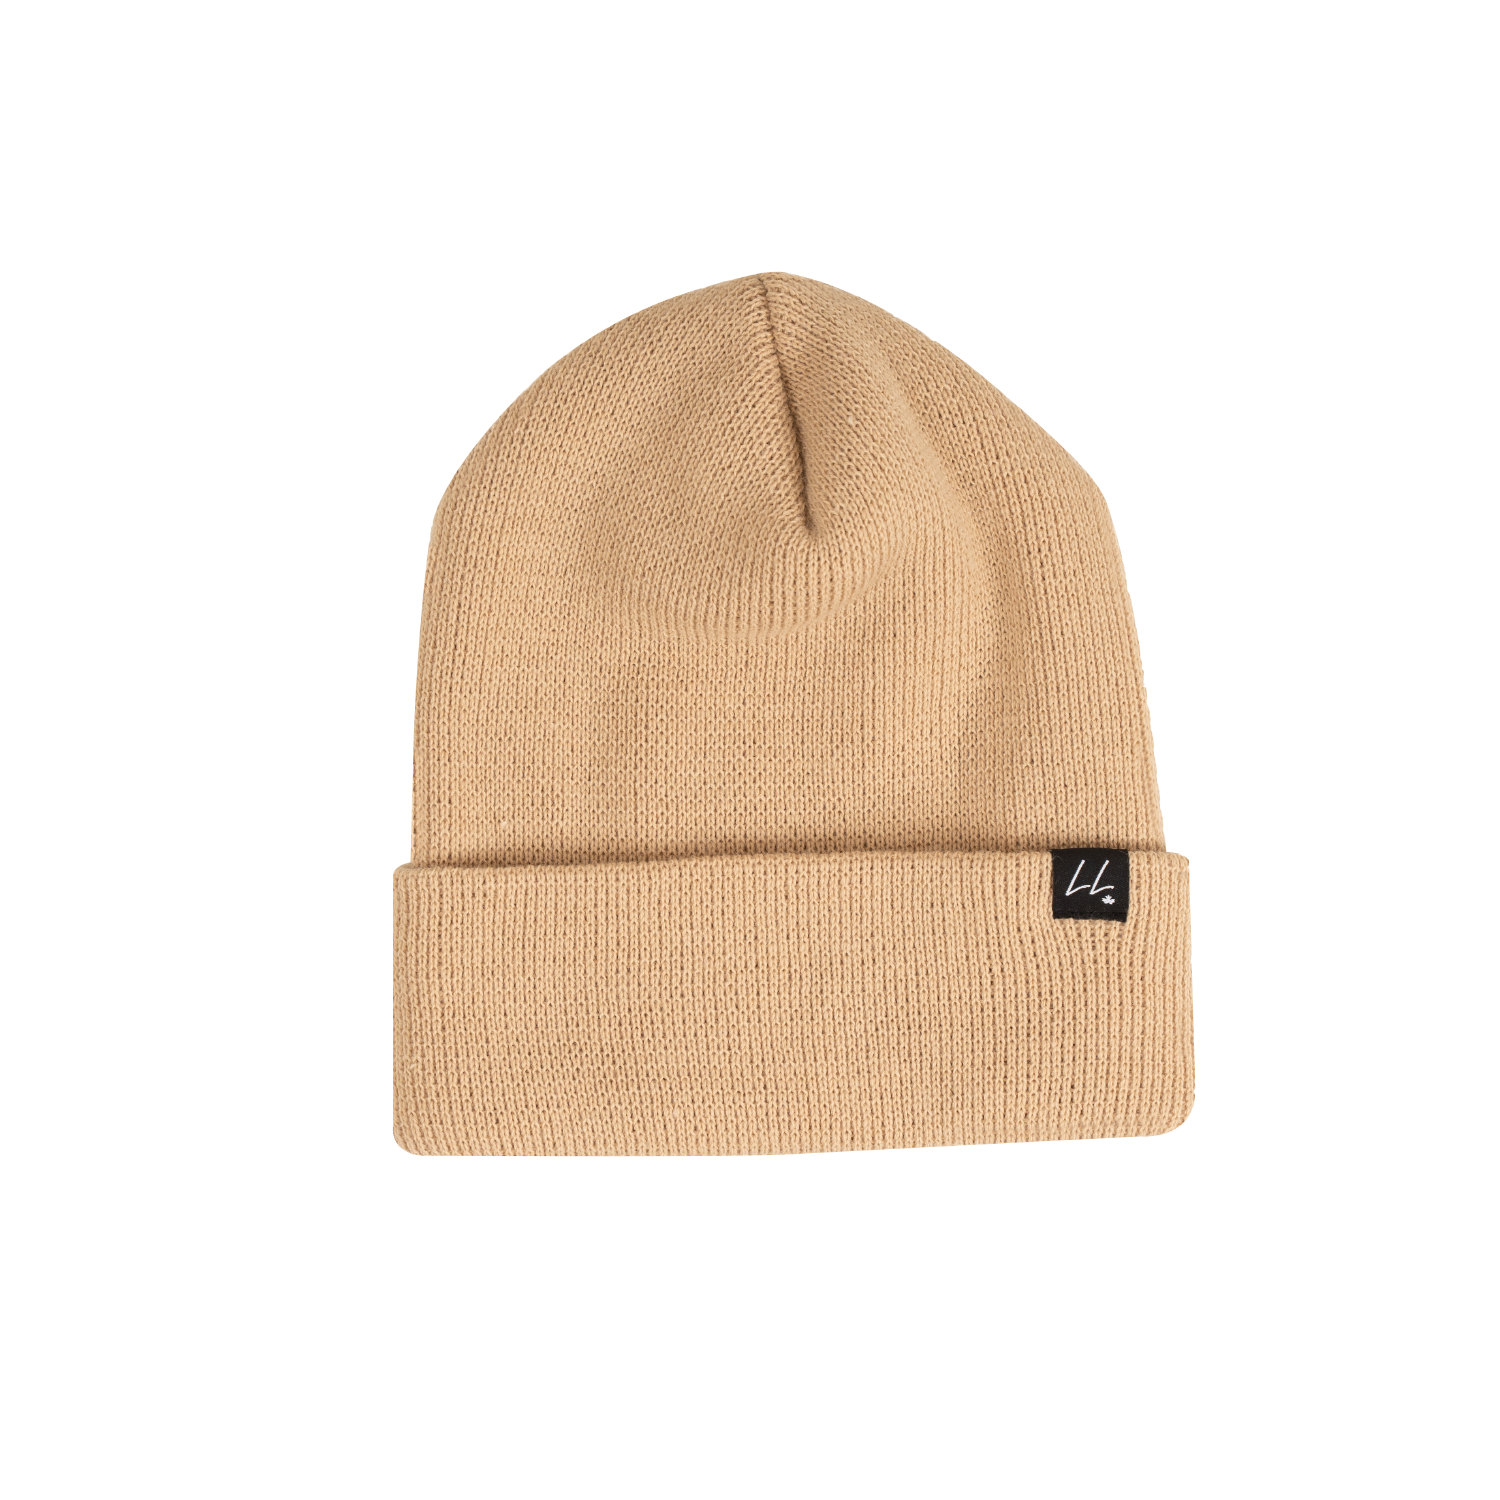 The Giving Toque -  Buy One, Donate One To Someone In Need - Camel - Local Laundry